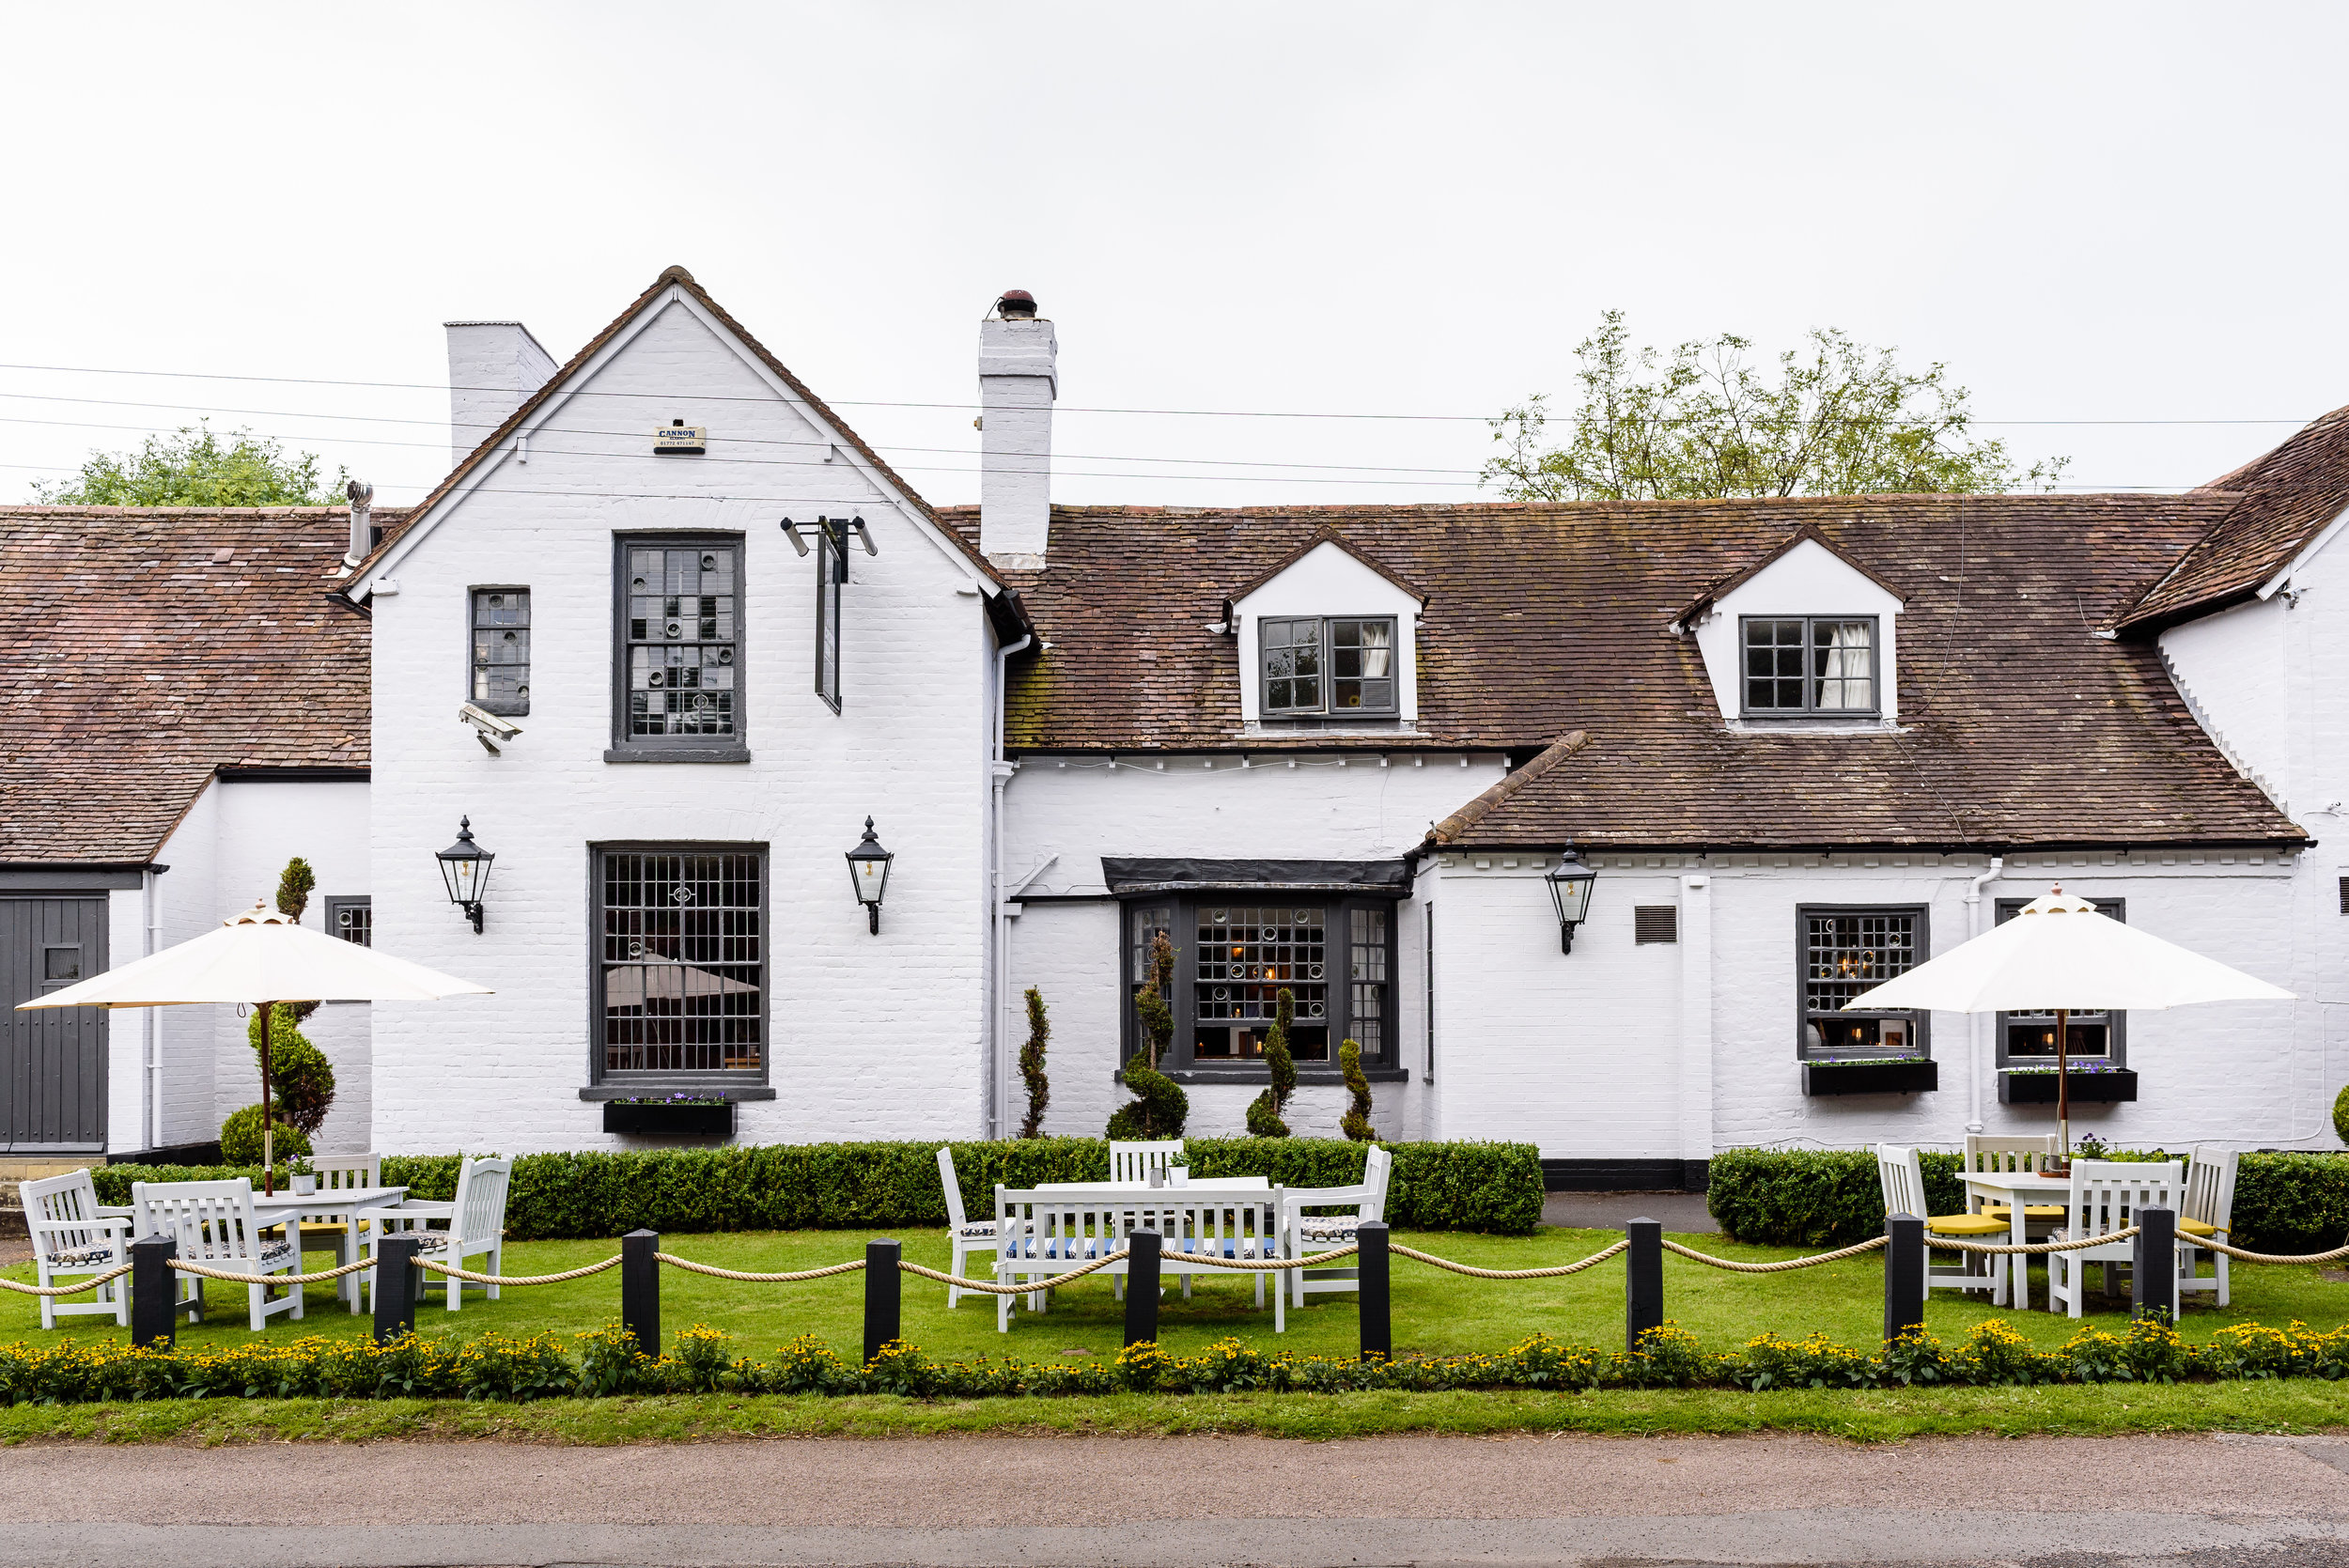 A Traditional Inn - oozing rural charm and rustic character